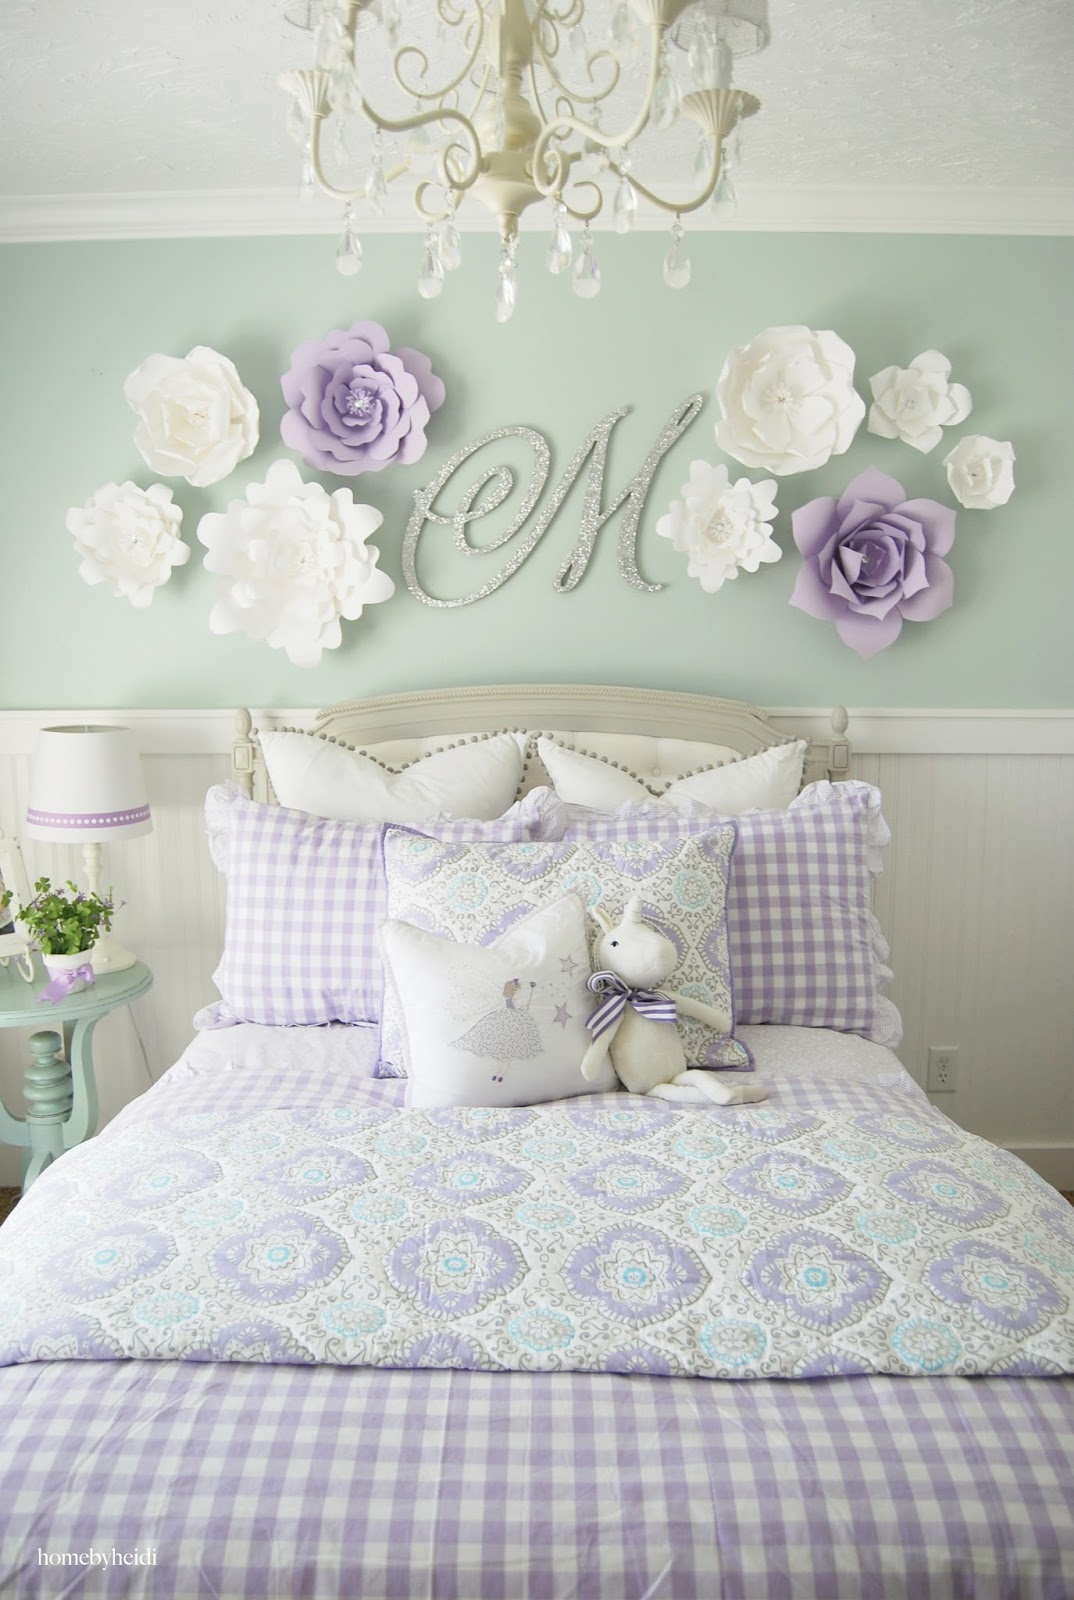 Home by heidi purple turquoise little girls room for Girl room ideas pinterest